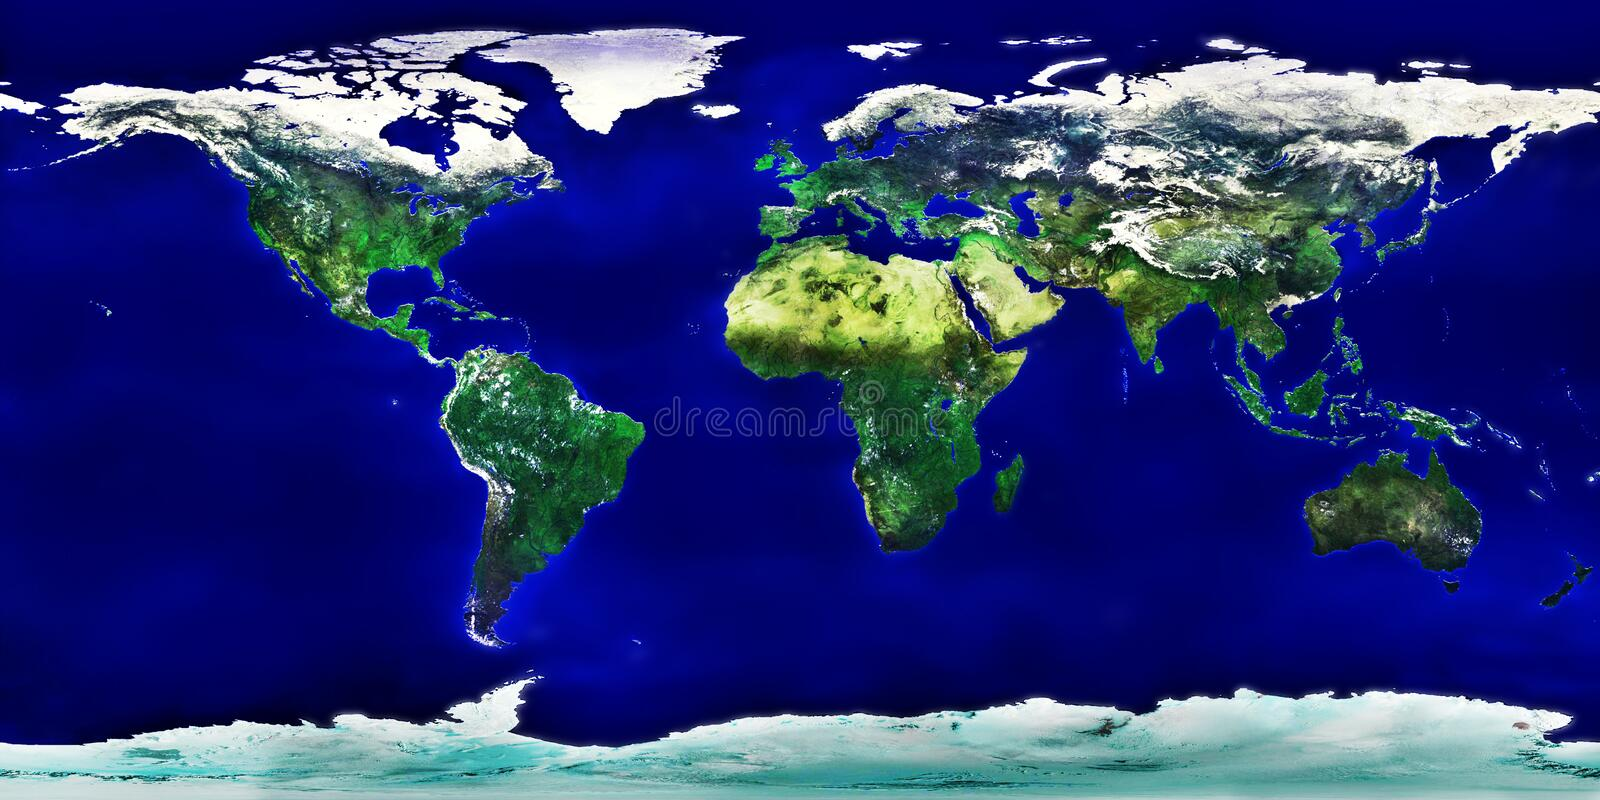 Detailed colored world map royalty free illustration